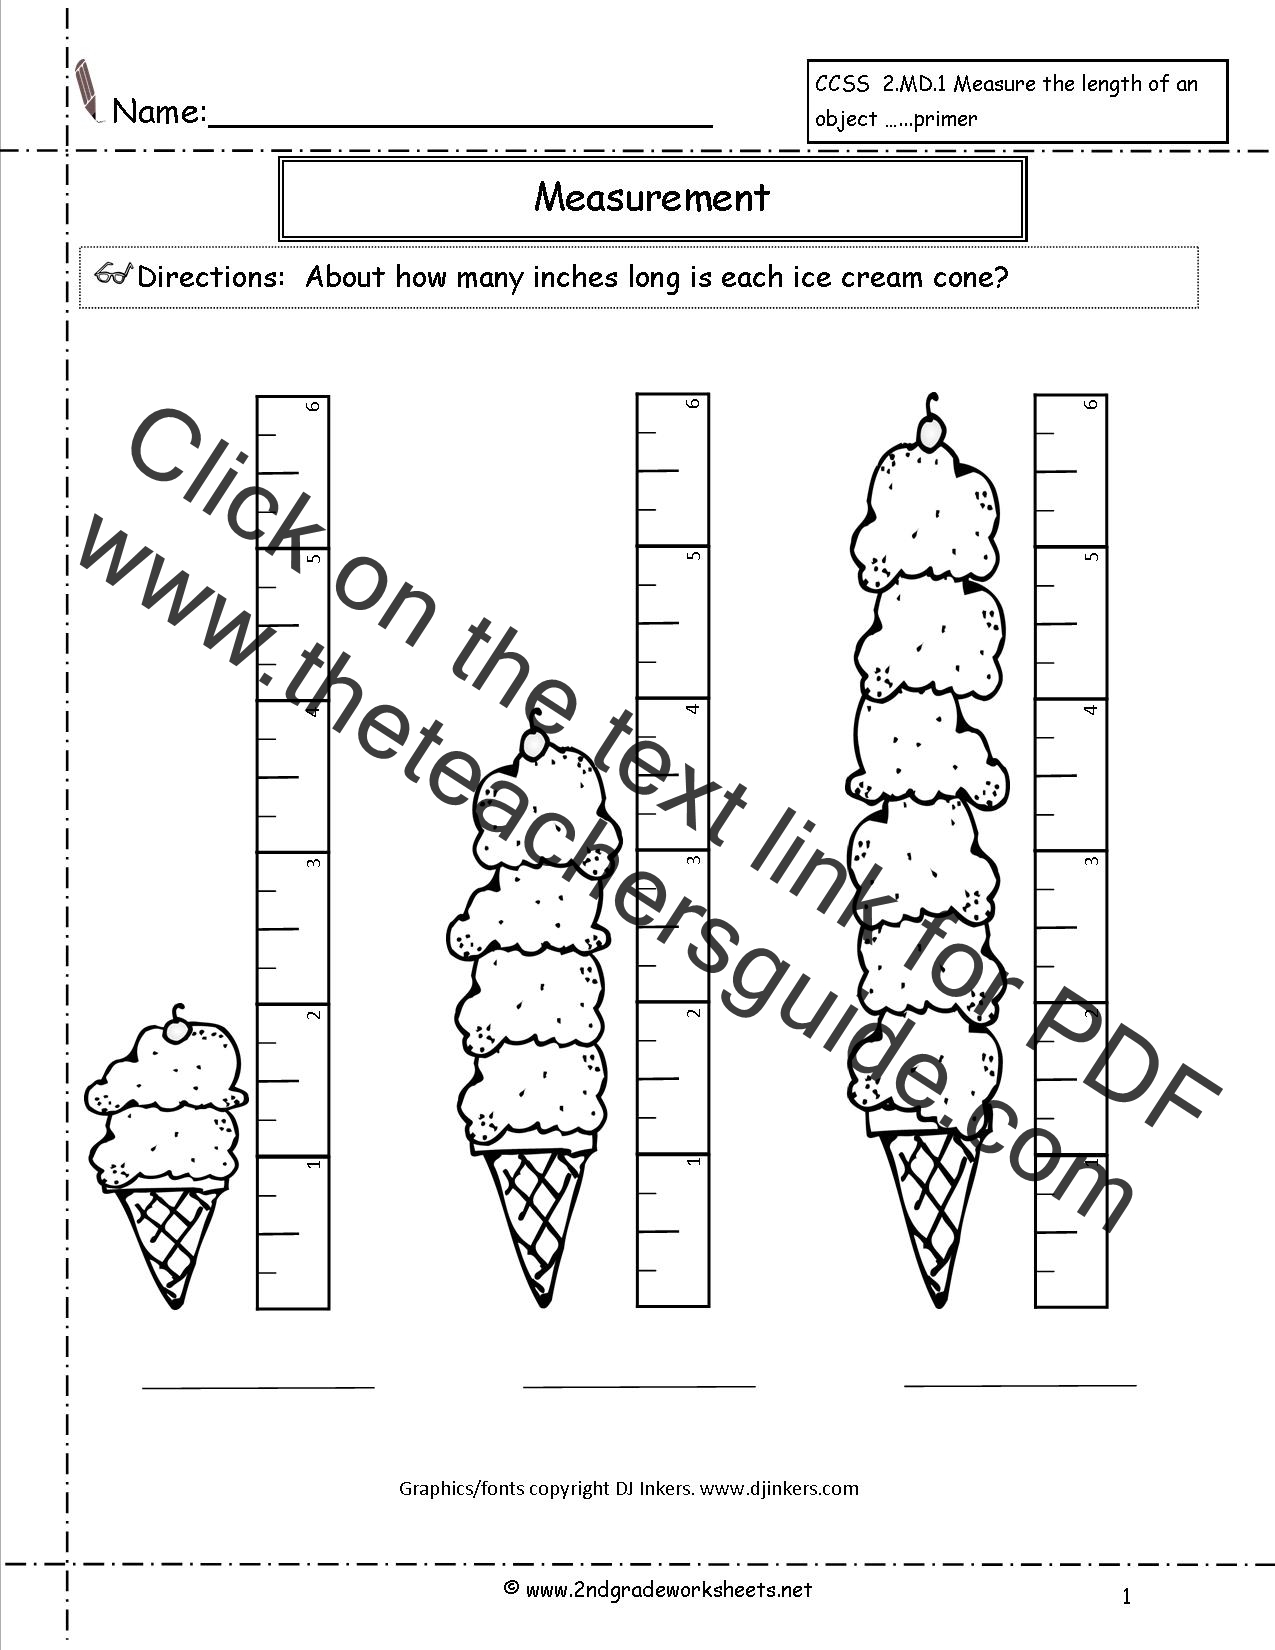 CCSS 2MD1 Worksheets Measuring Worksheets – Ruler Measurement Worksheets